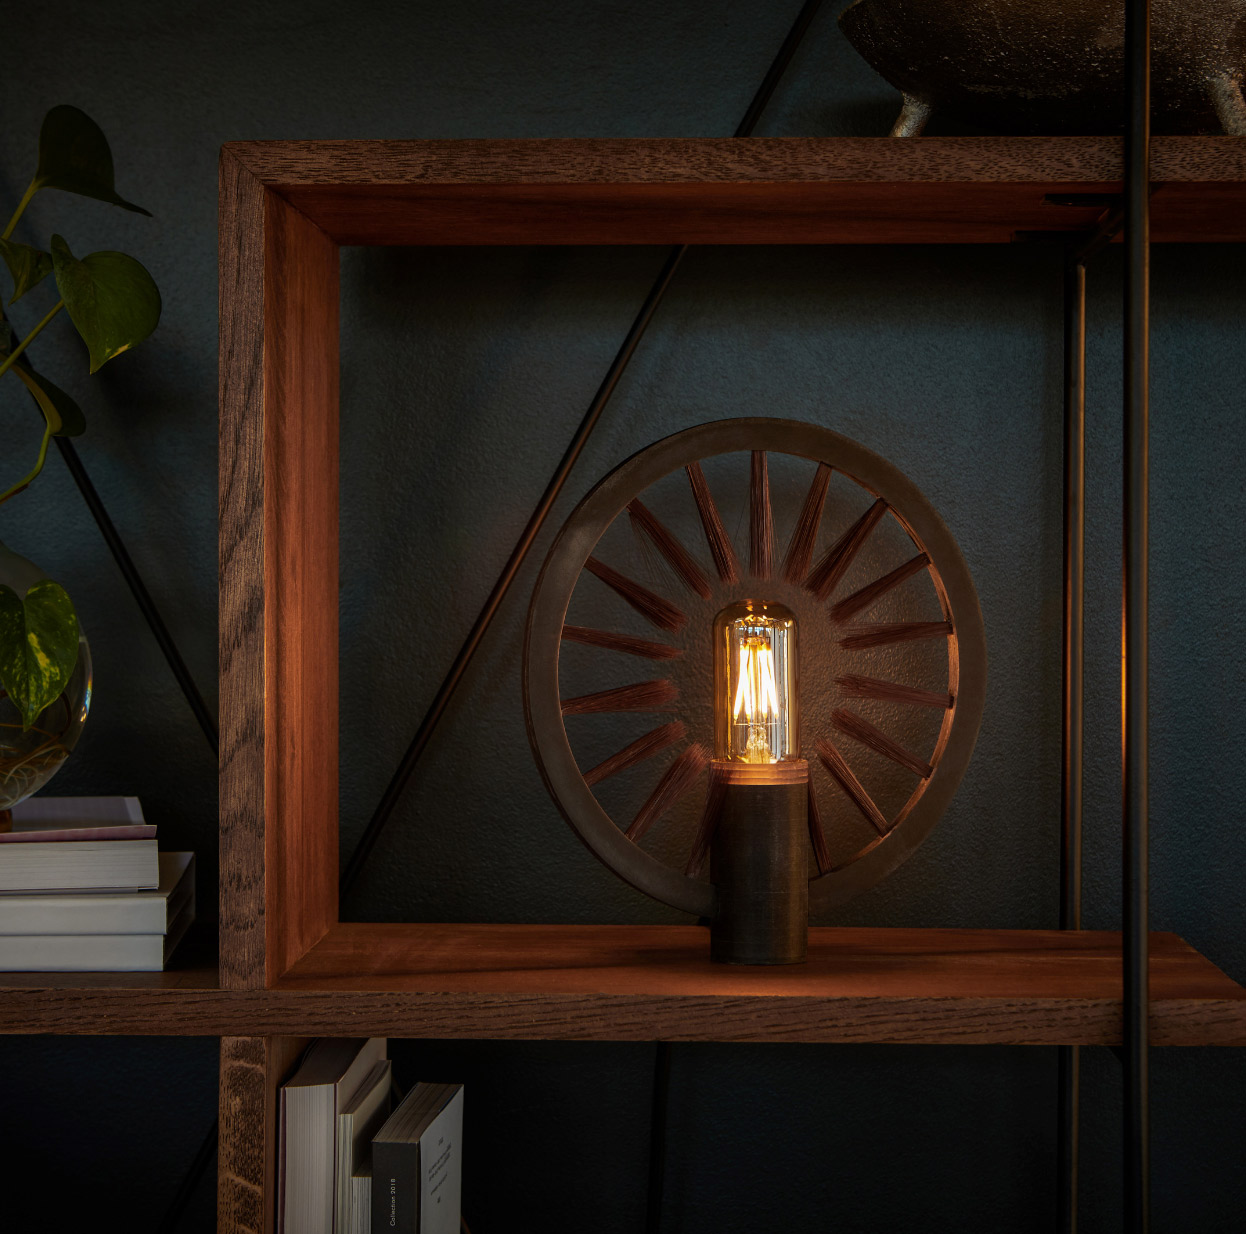 SoftTouchLamps-insitu-1.jpg